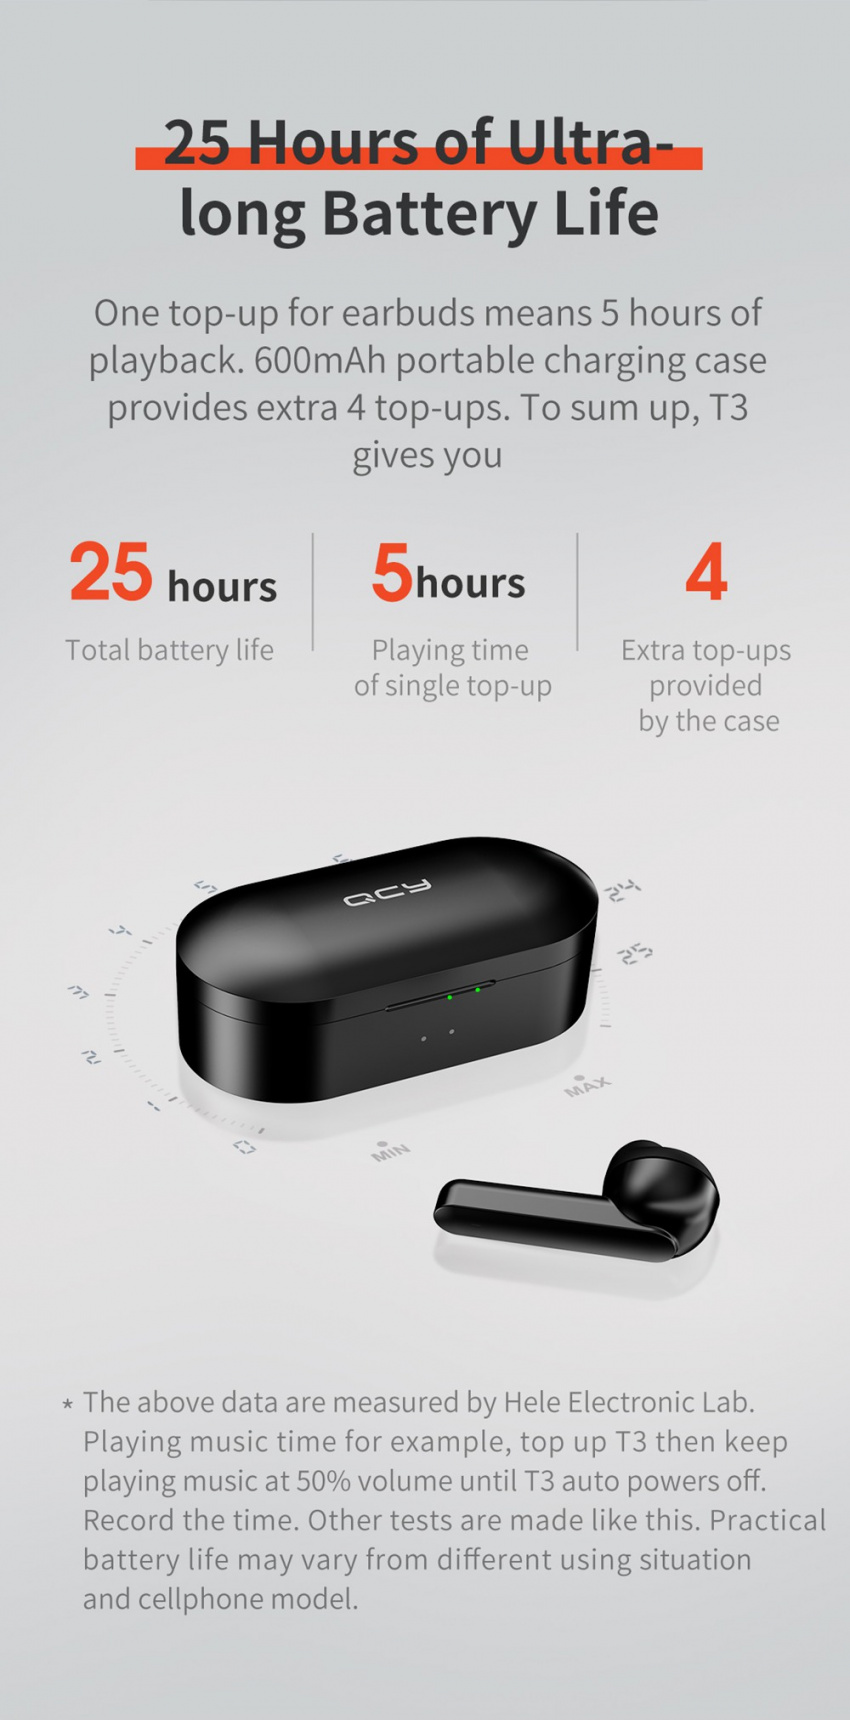 QCY T3 Bluetooth 5.0 TWS Earphones Stereo/Mono Mode AAC/SBC Tech 25 Hours Battery Life IPX5 3D Stereo